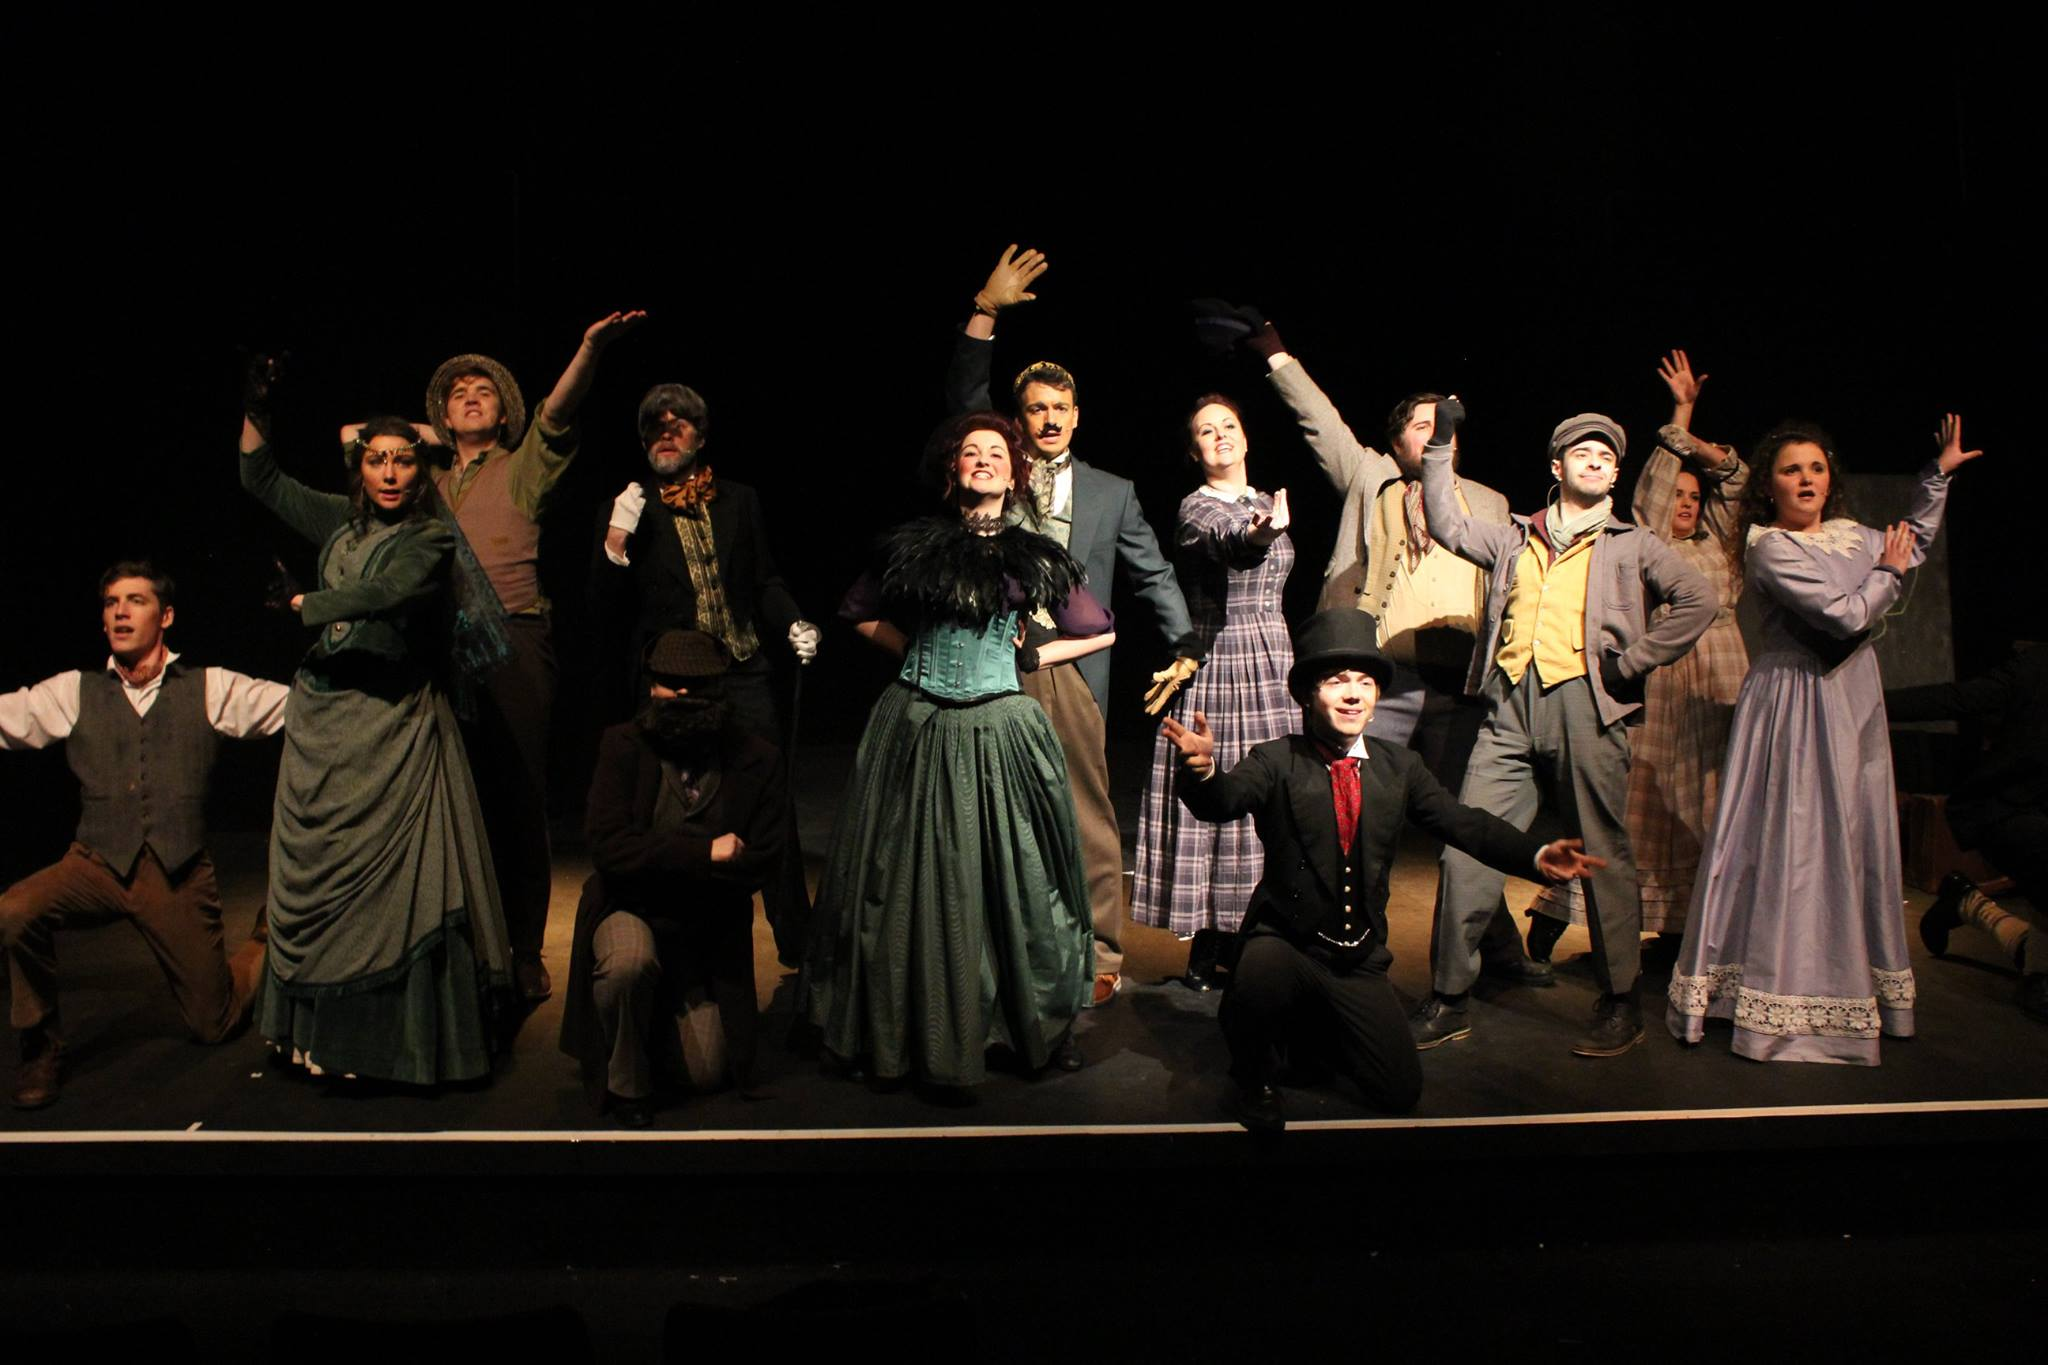 The finale scene from the Mad Props Theatre production of A Mystery of Edwin Drood. All of the cast are on stage with arms in the air